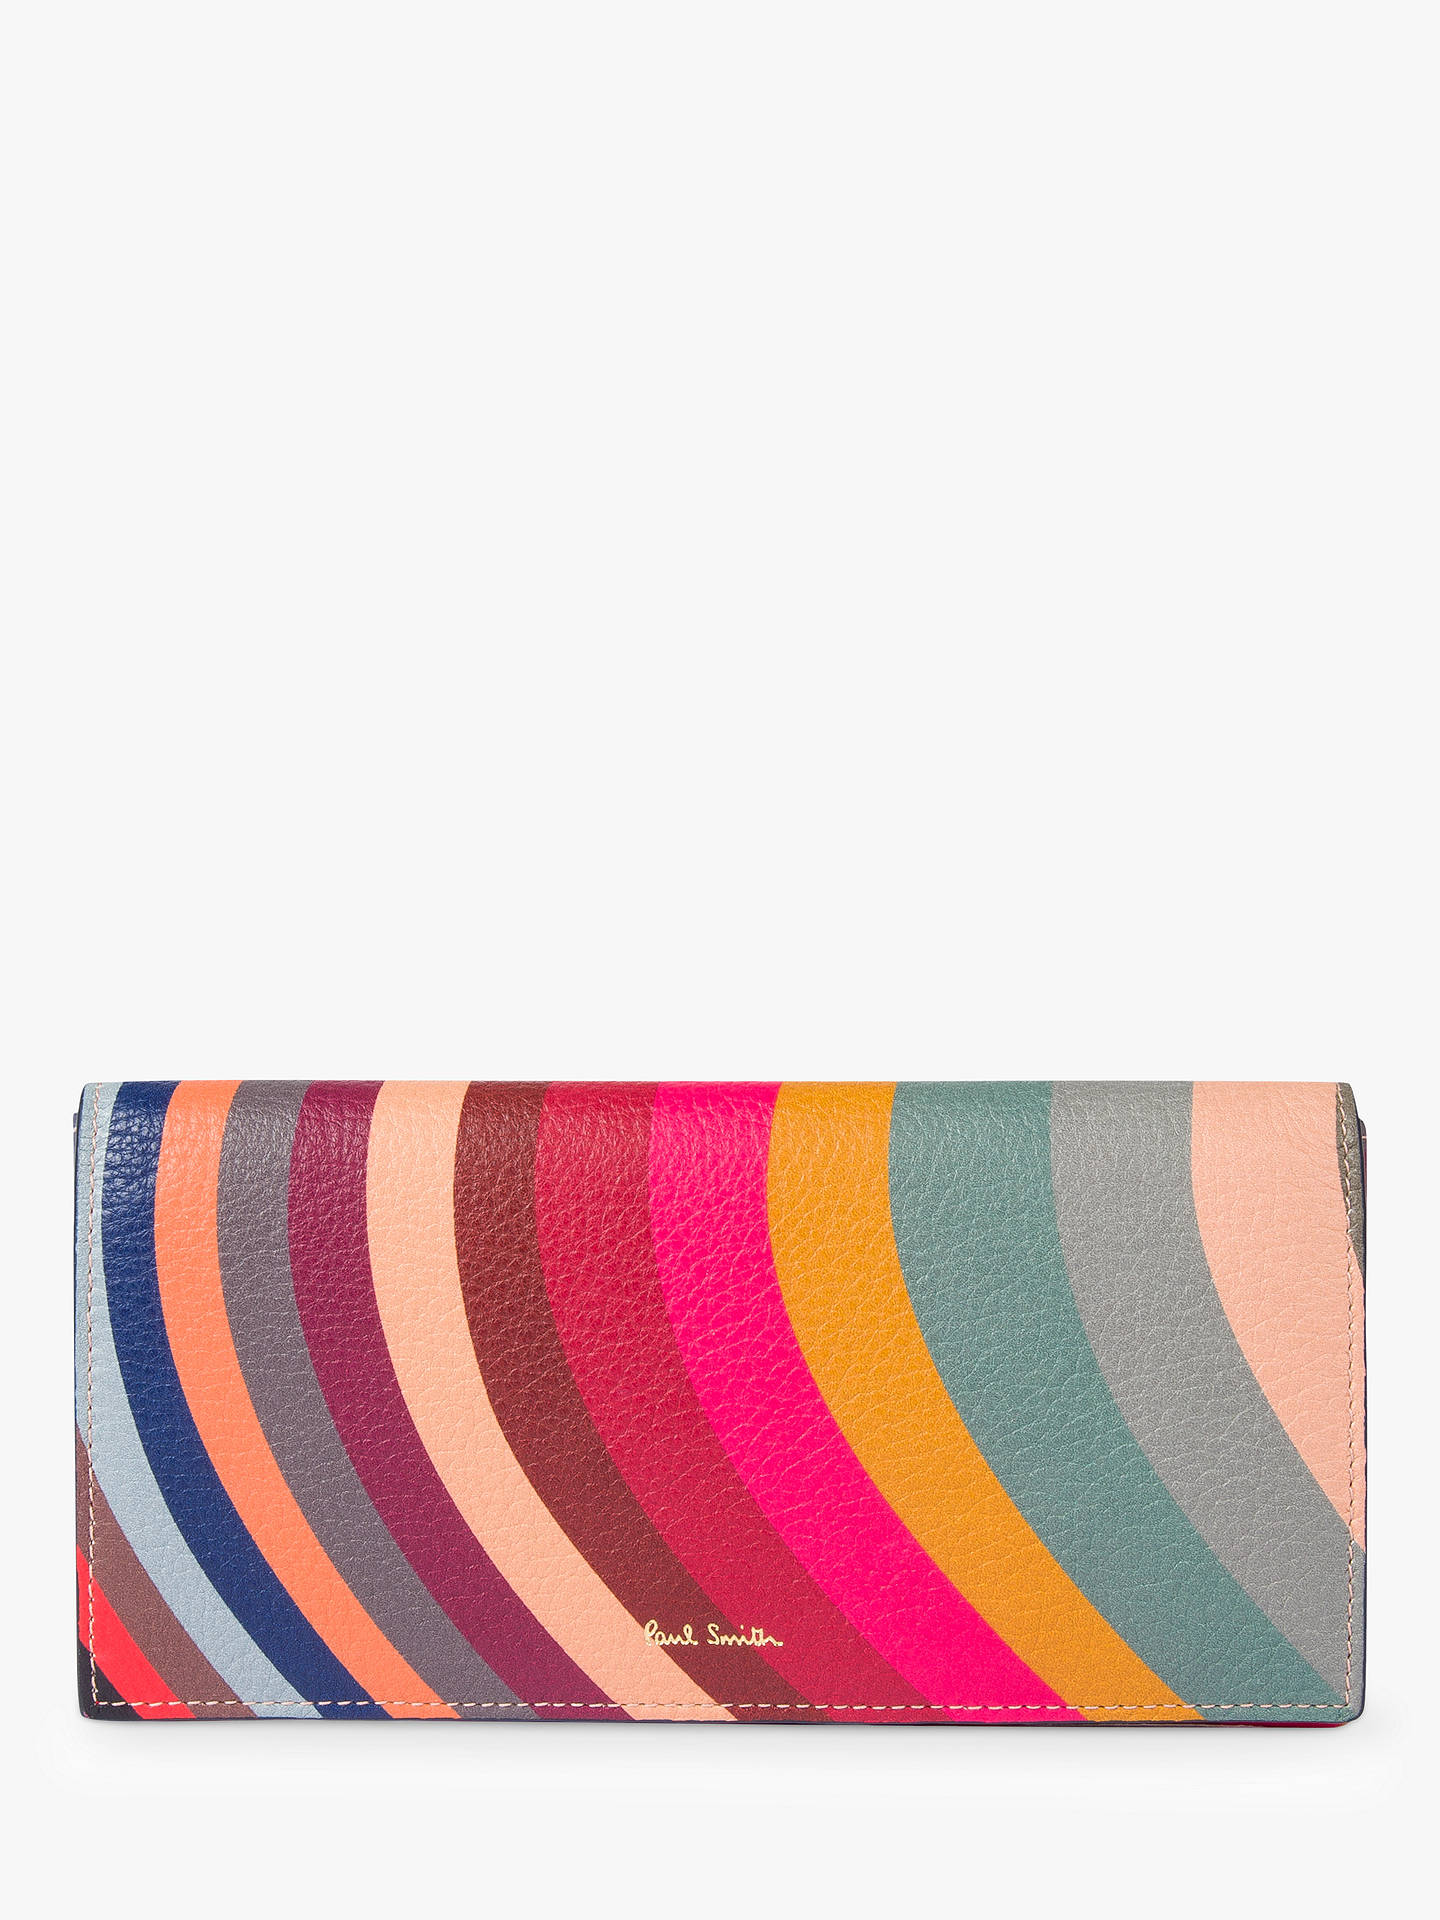 9d3af9b709f3 Buy Paul Smith Leather Tri-Fold Purse, Swirl Online at johnlewis.com ...